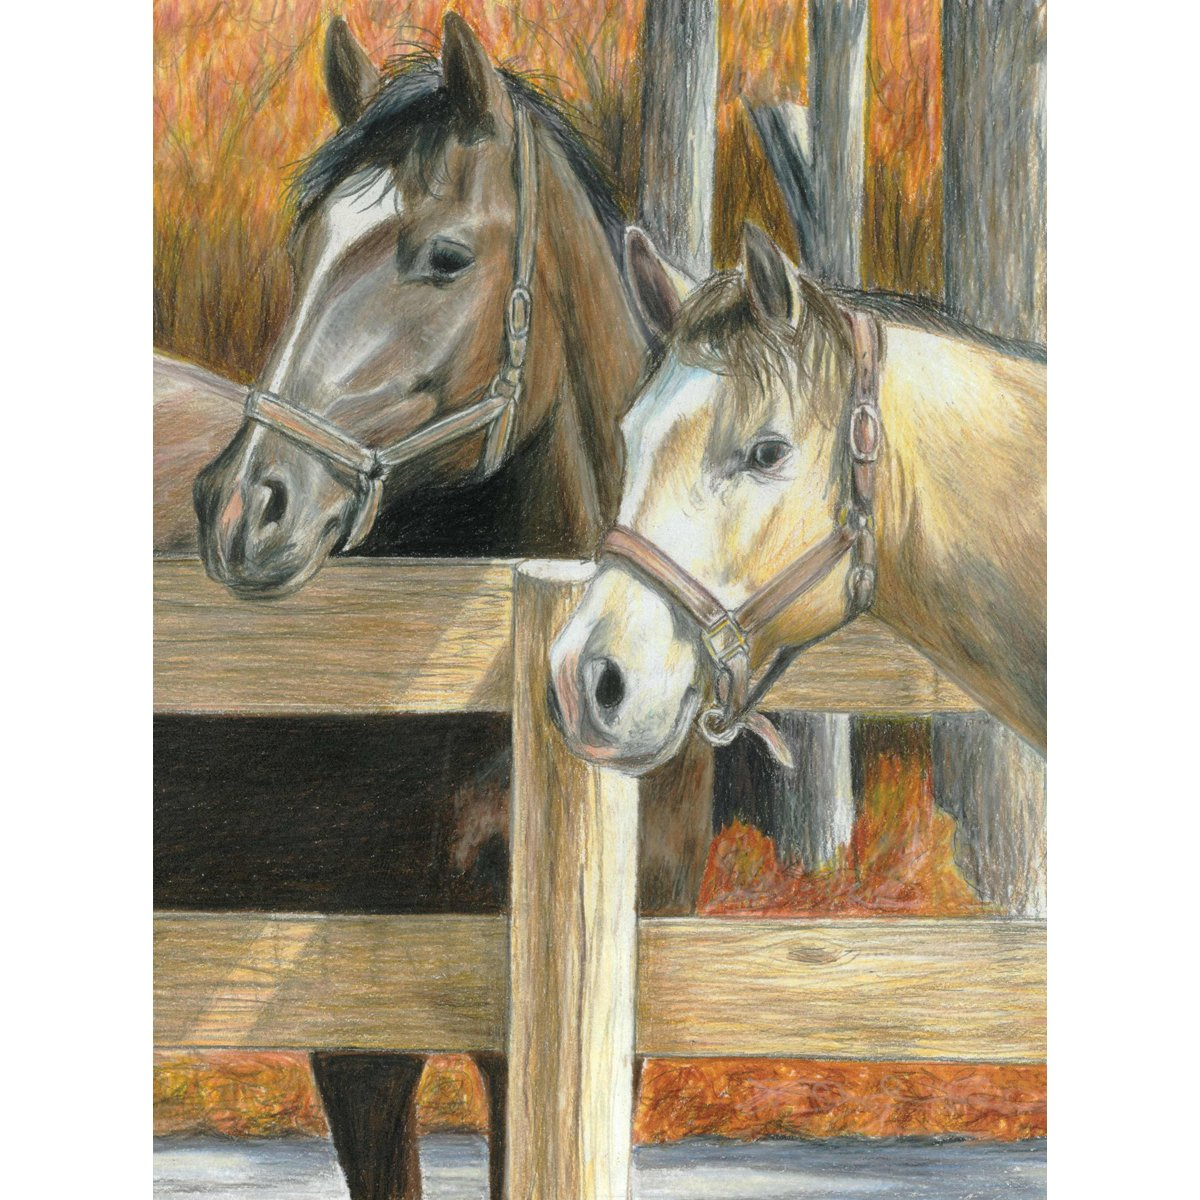 Bucks Pal Buck/'s Pal CPBNK-16 8.75 by 11.75-Inch Royal Brush Color Pencil by Number Kit